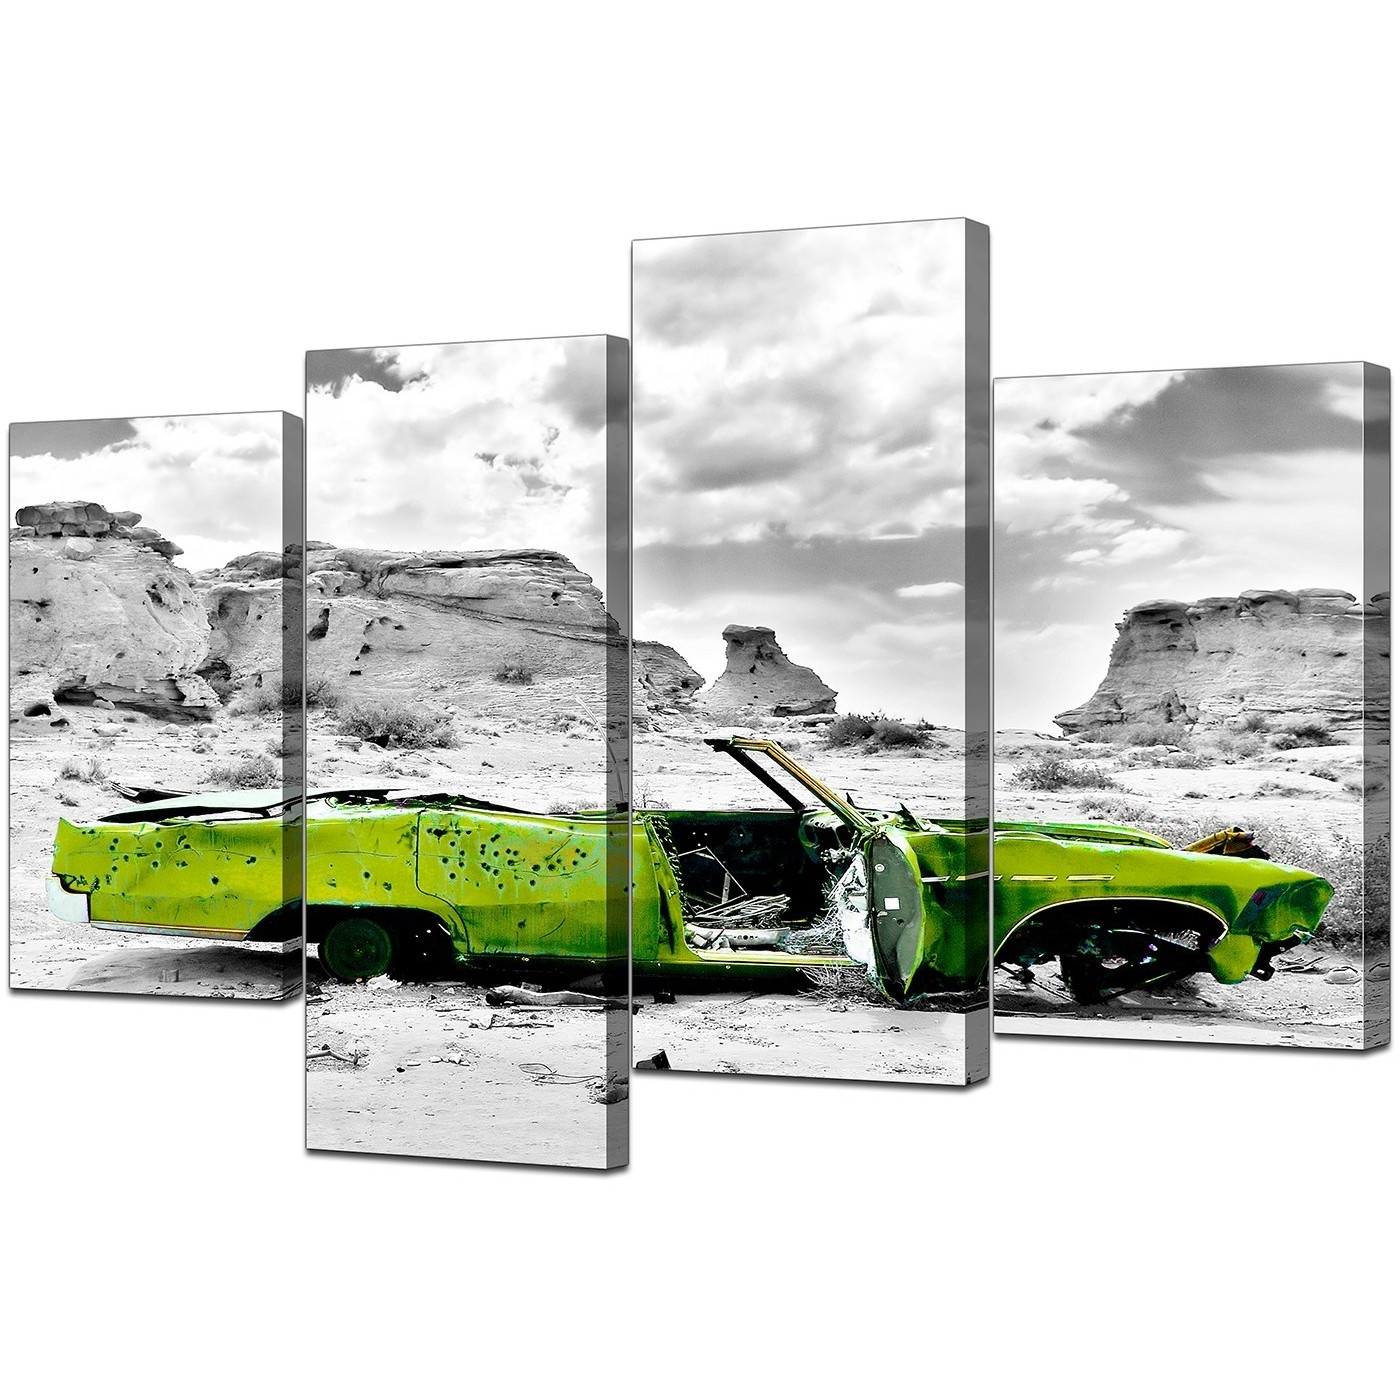 Lime Green Abstract Wall Art Regarding Preferred Canvas Art Of Green Car In Black & White For Your Office (View 12 of 15)